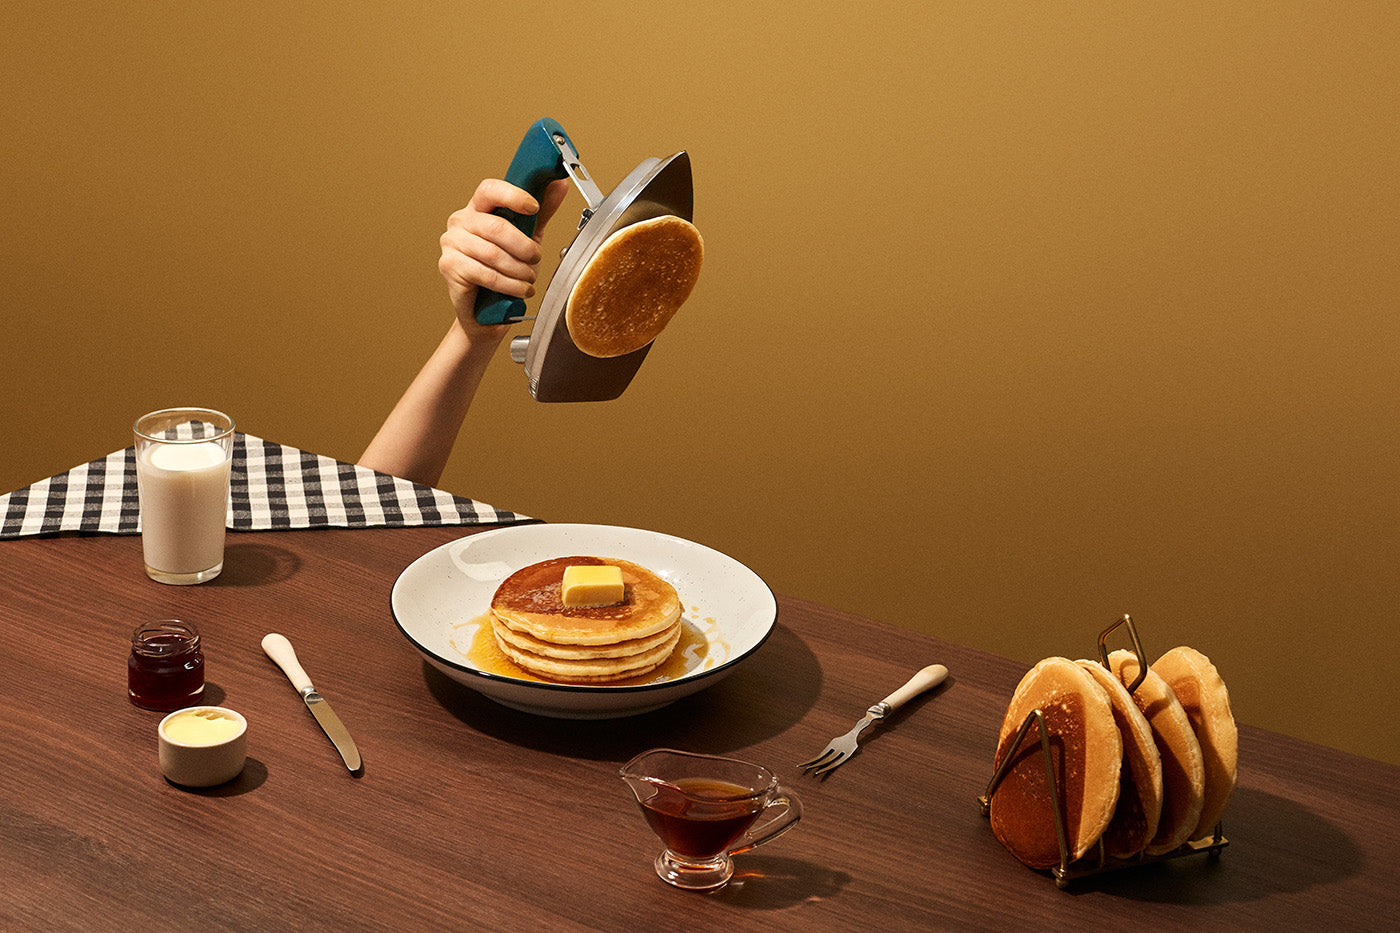 Ironed pancakes. From the series Break/Fast by Fragmento Universo